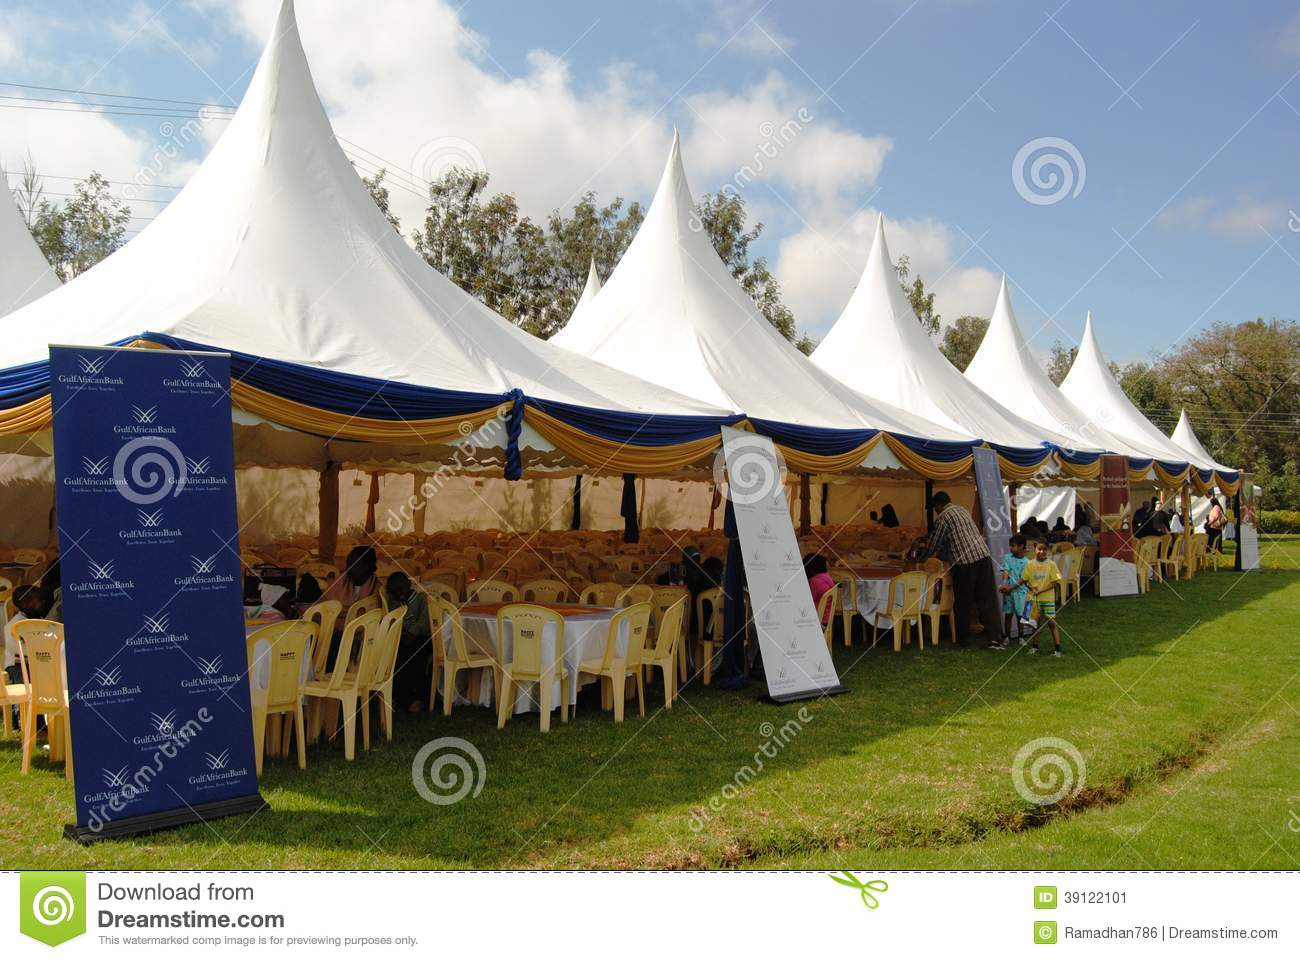 Event Management and provision of tent services in Nairobi Kenya & Event Management Tents Nairobi Kenya Editorial Photo - Image of ...